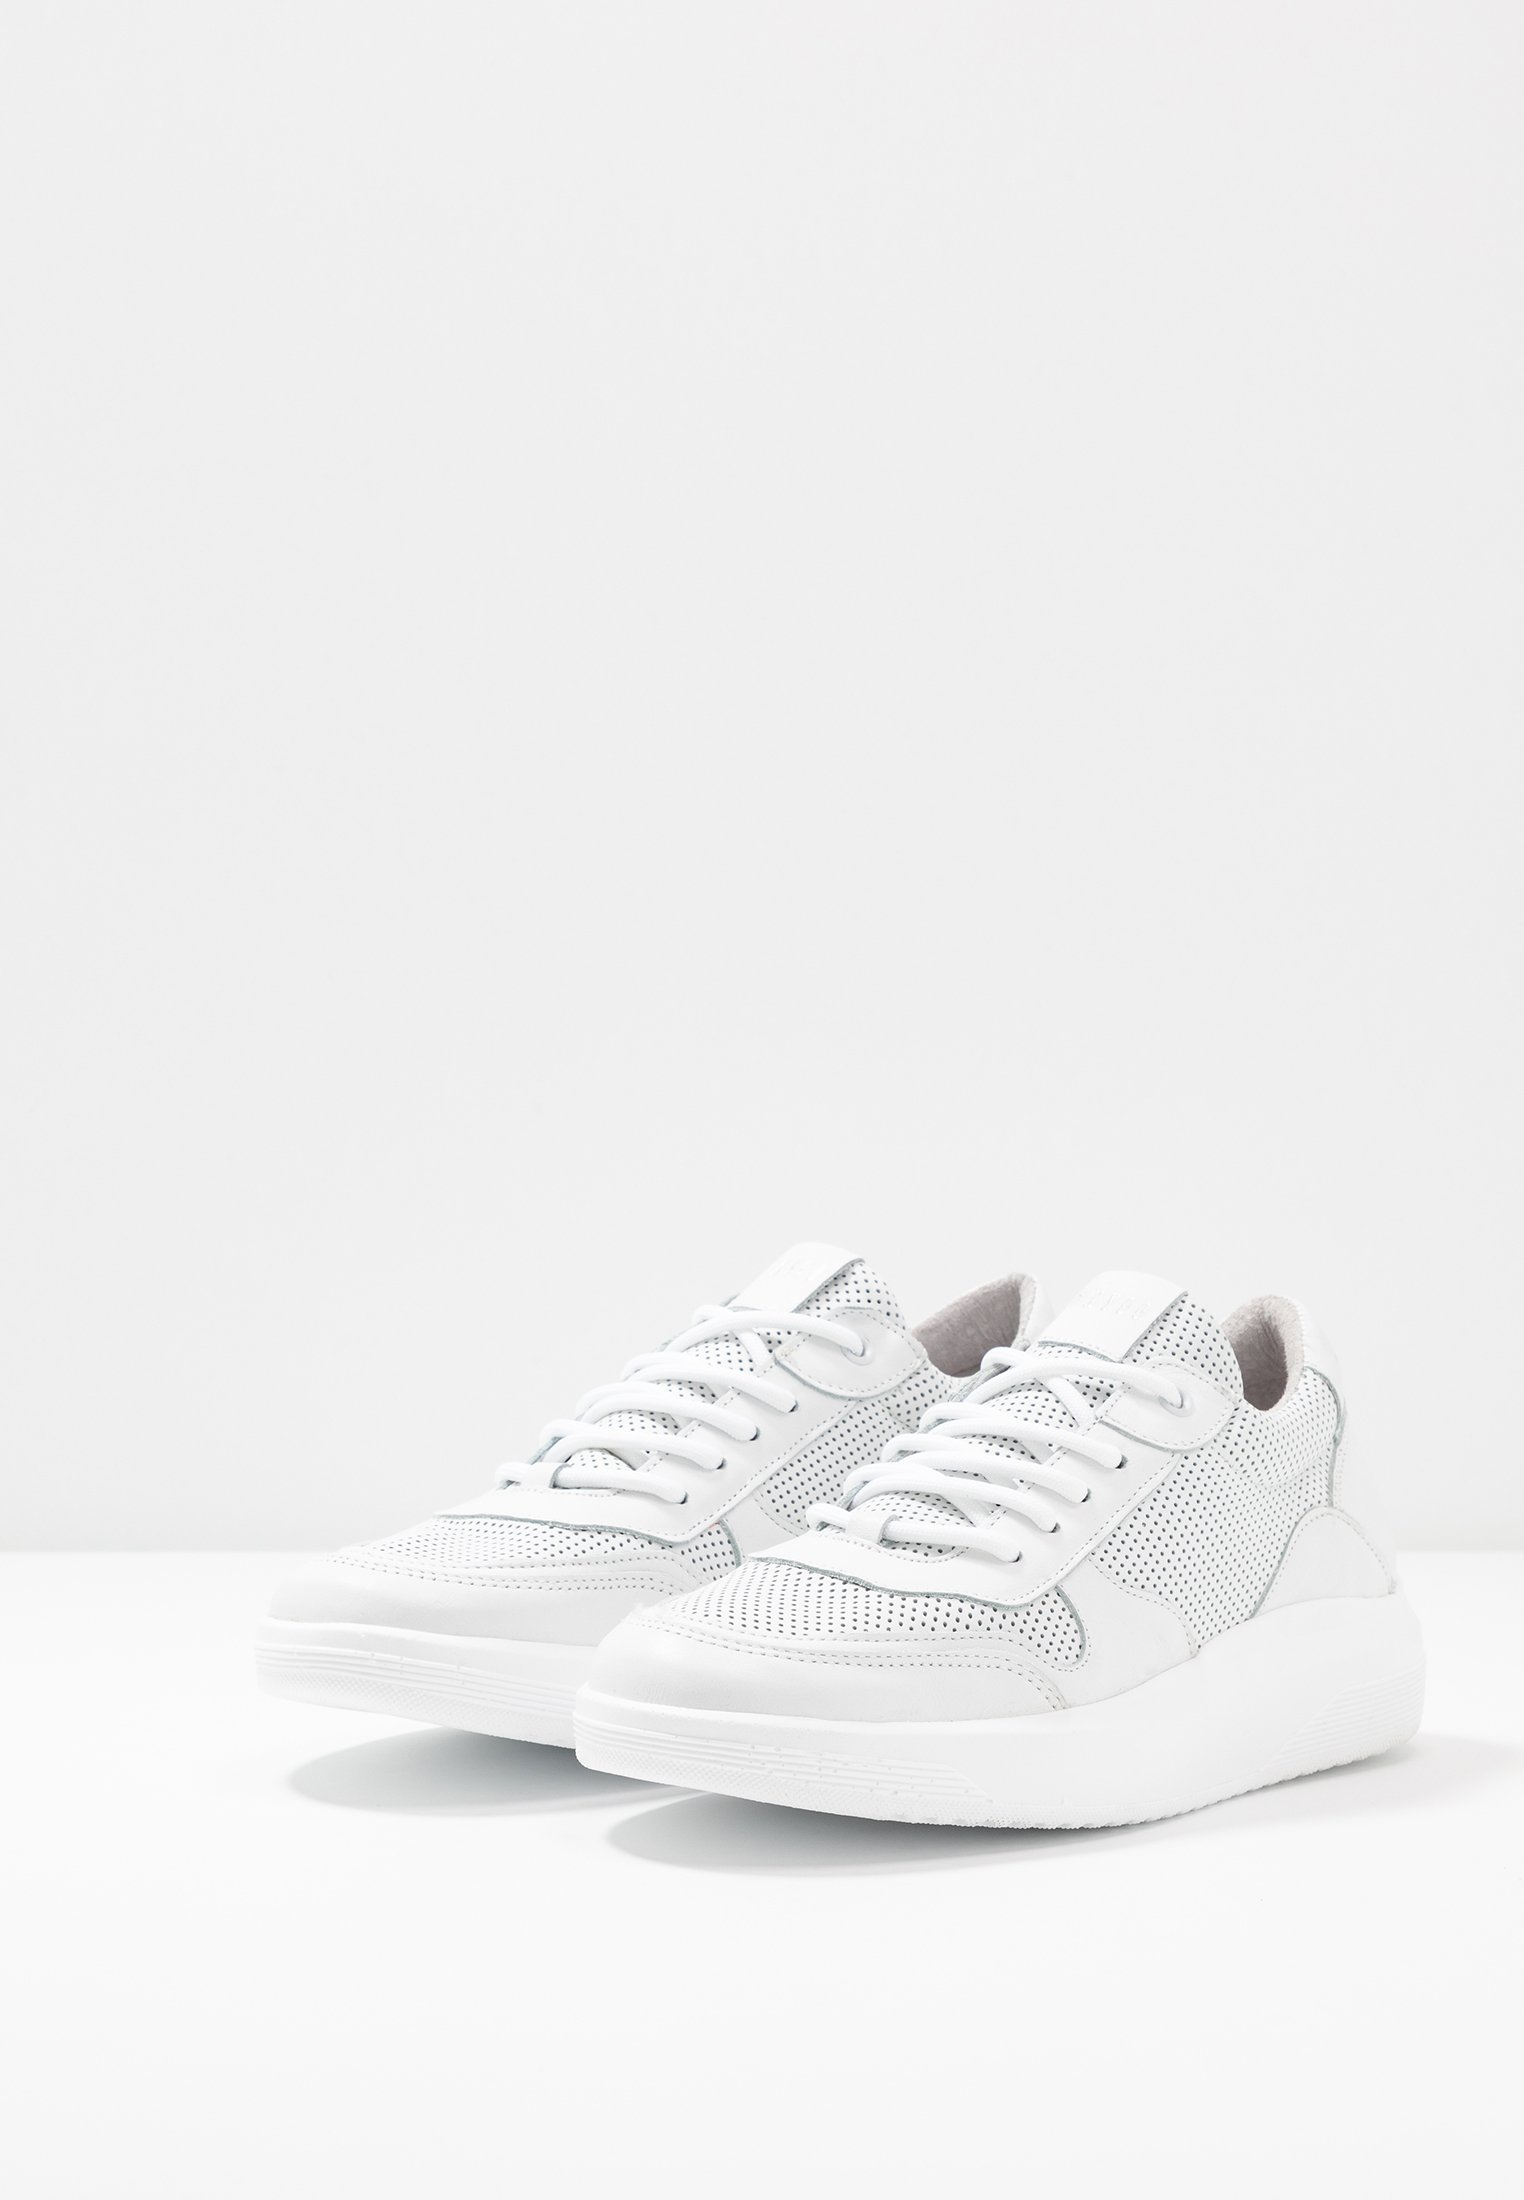 Steve Madden Franklo - Sneaker Low White Black Friday